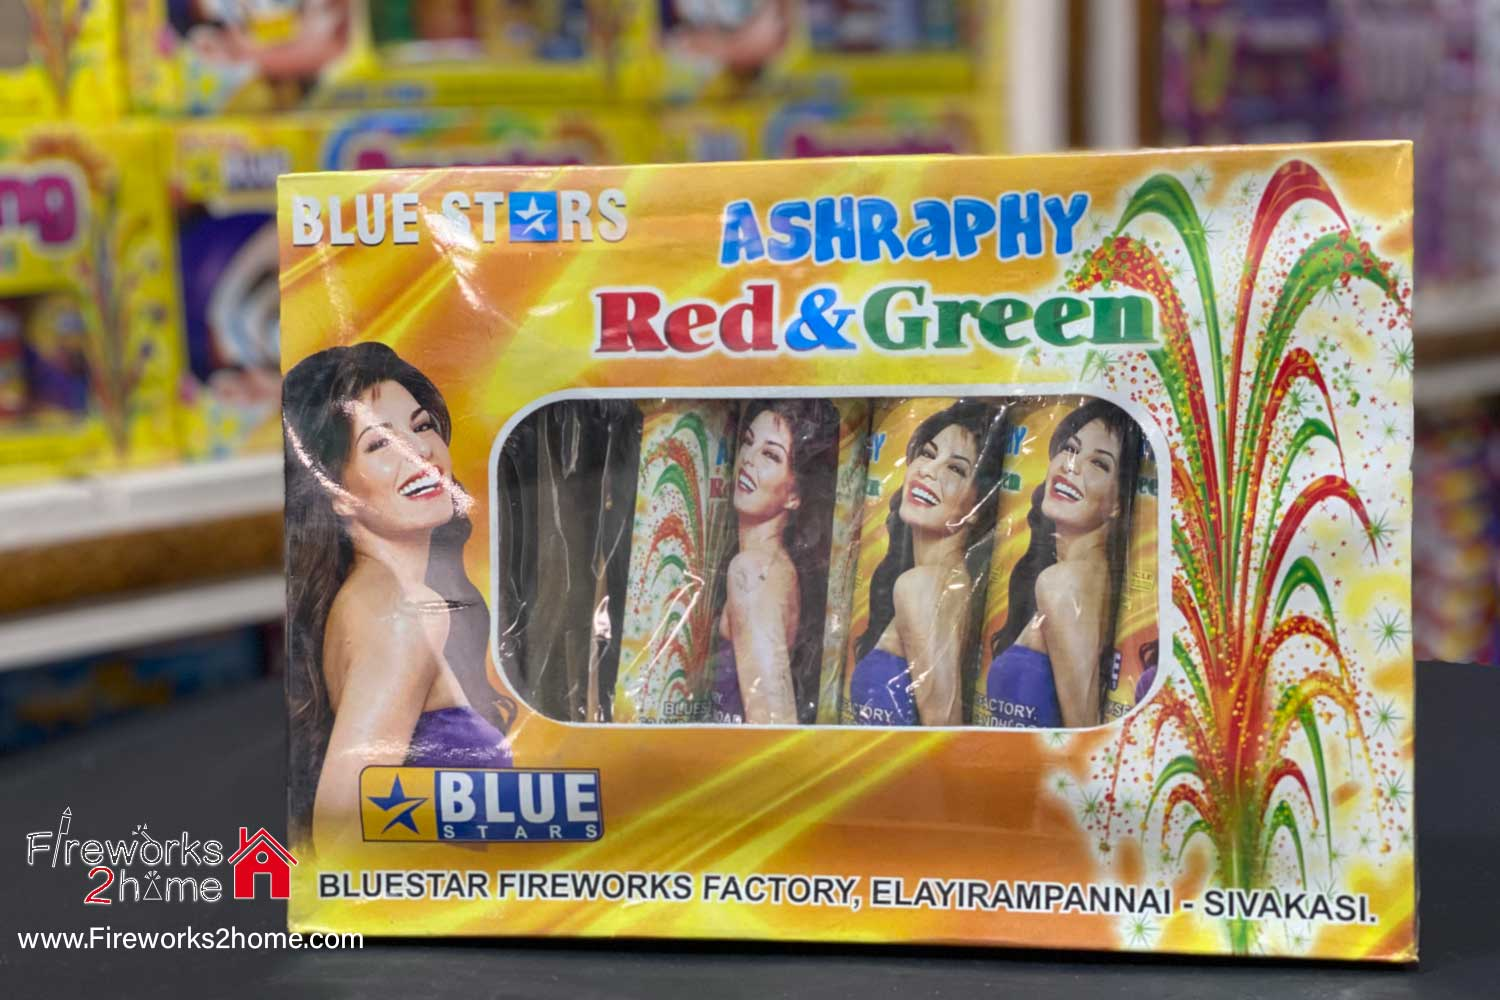 ashraphy-red-&-green-blue-star